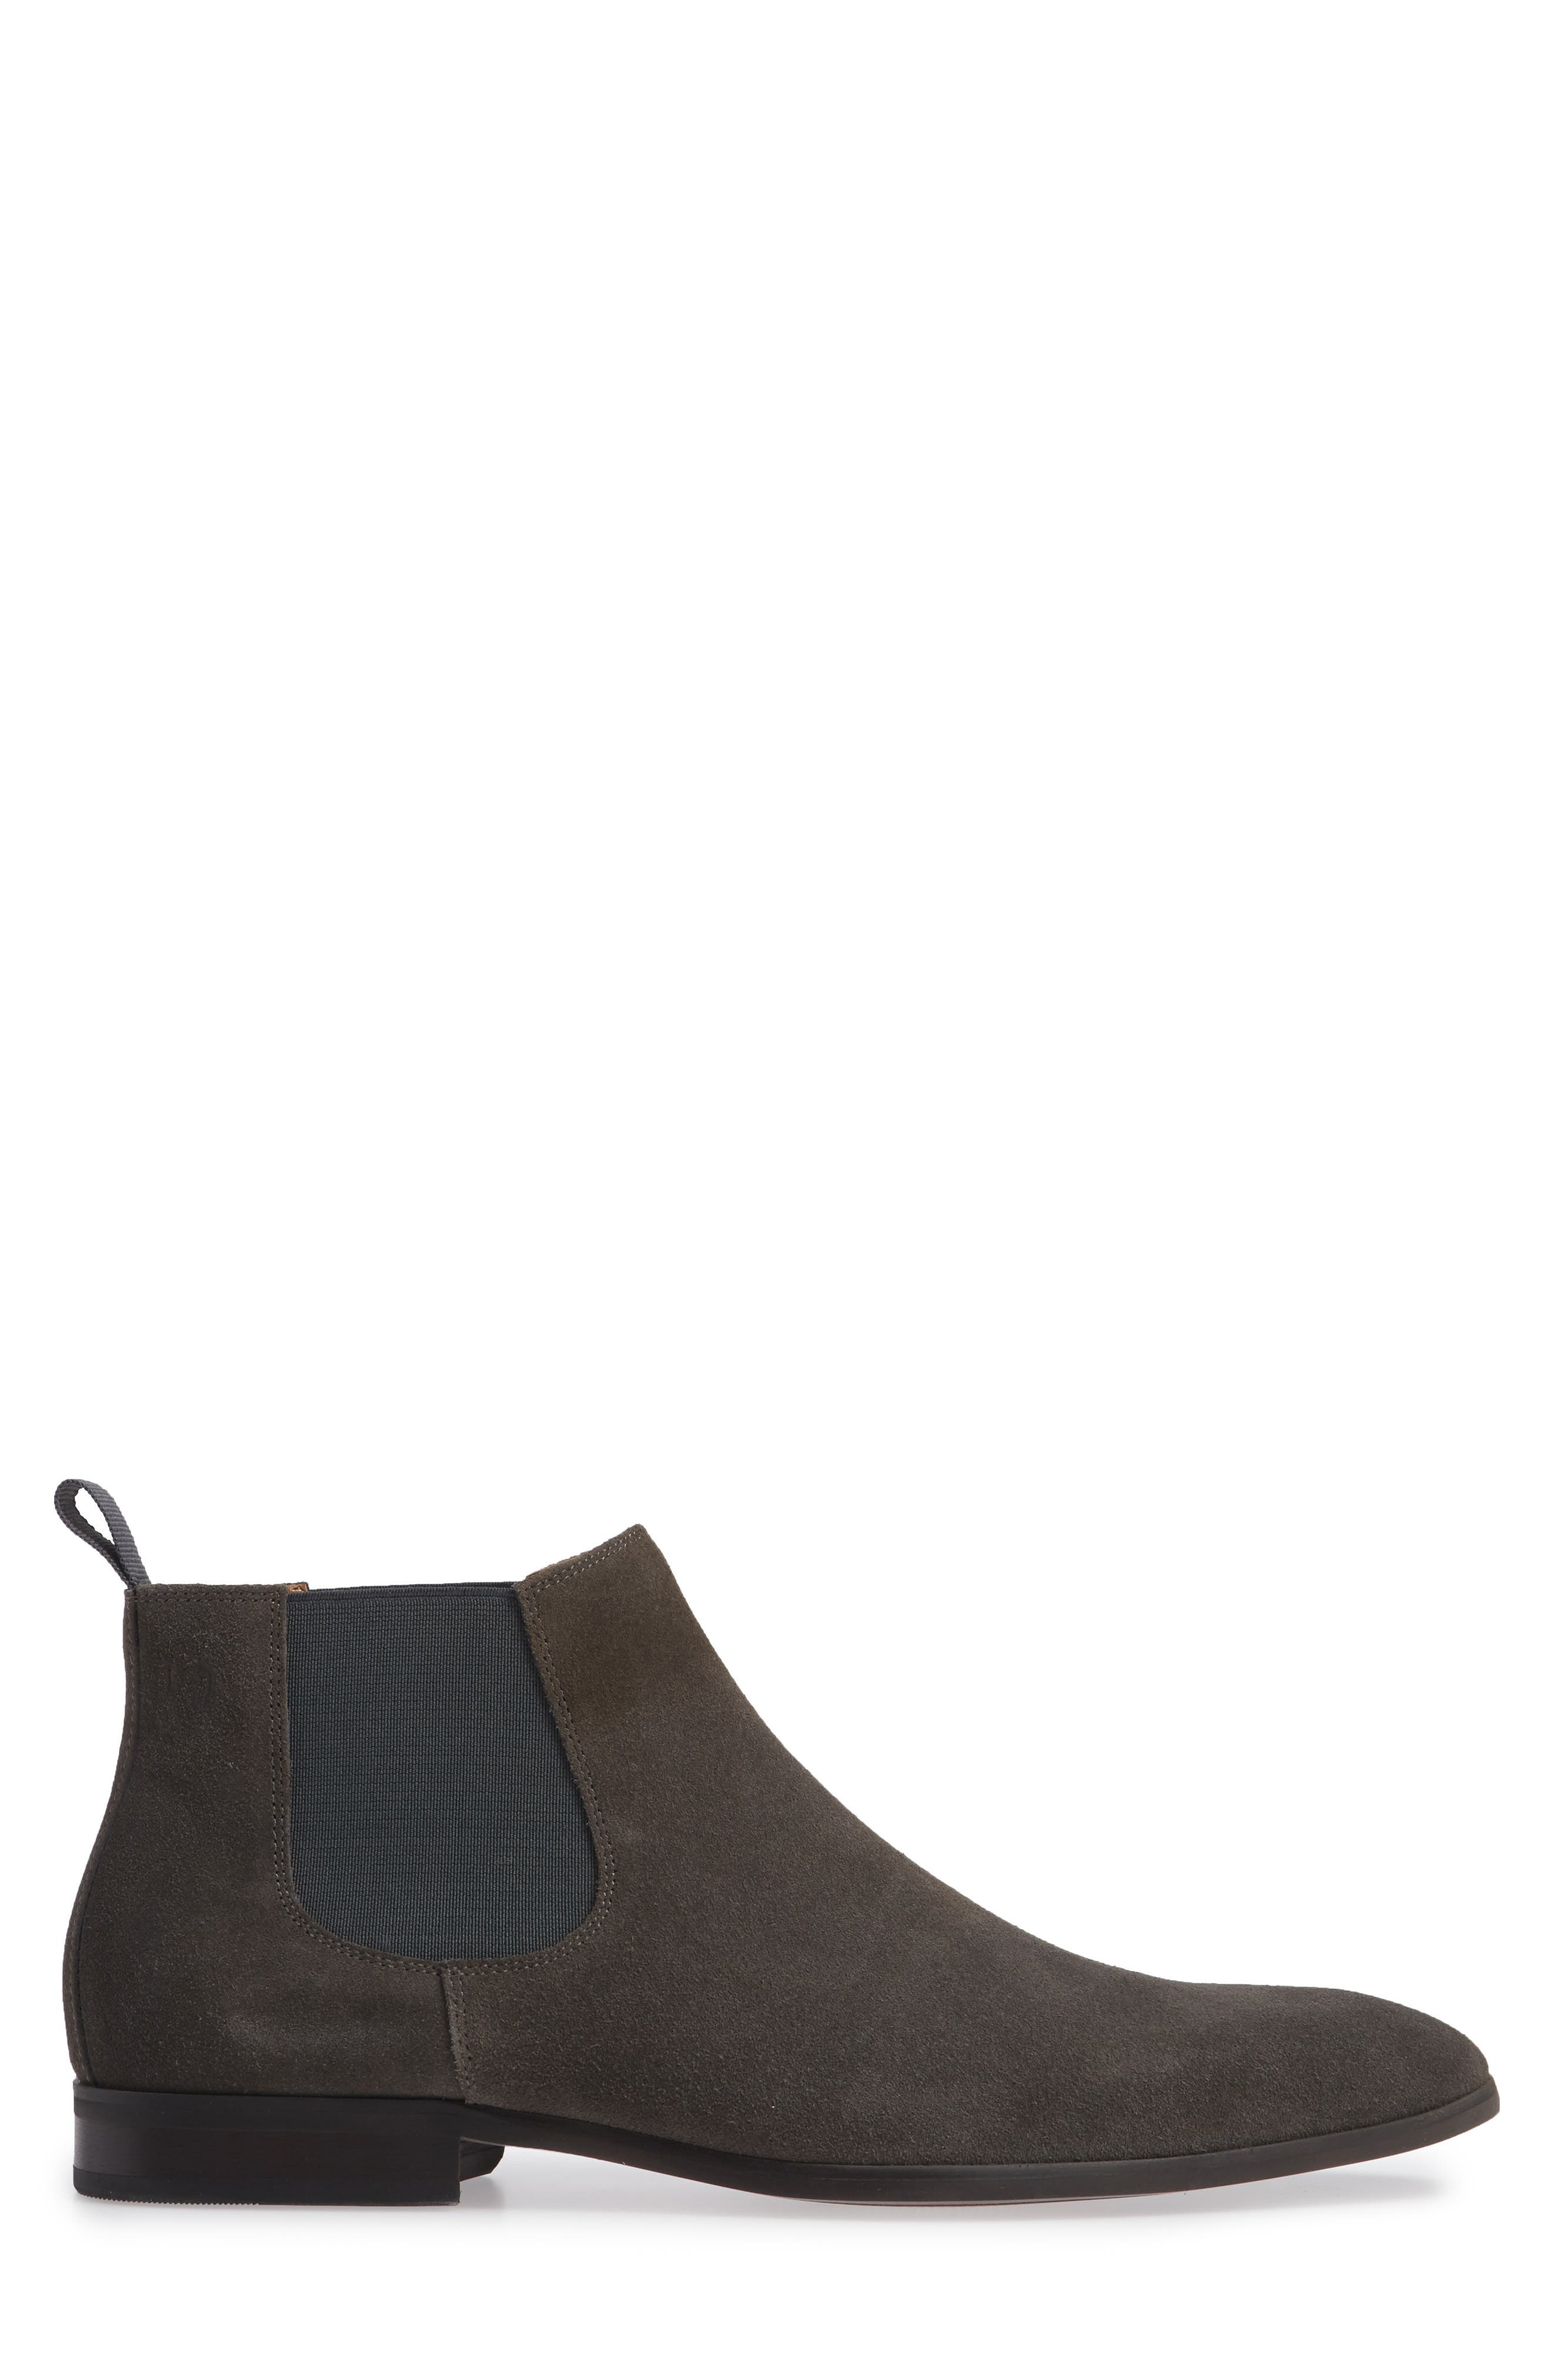 Edward Chelsea Boot,                             Alternate thumbnail 3, color,                             CHARCOAL SUEDE